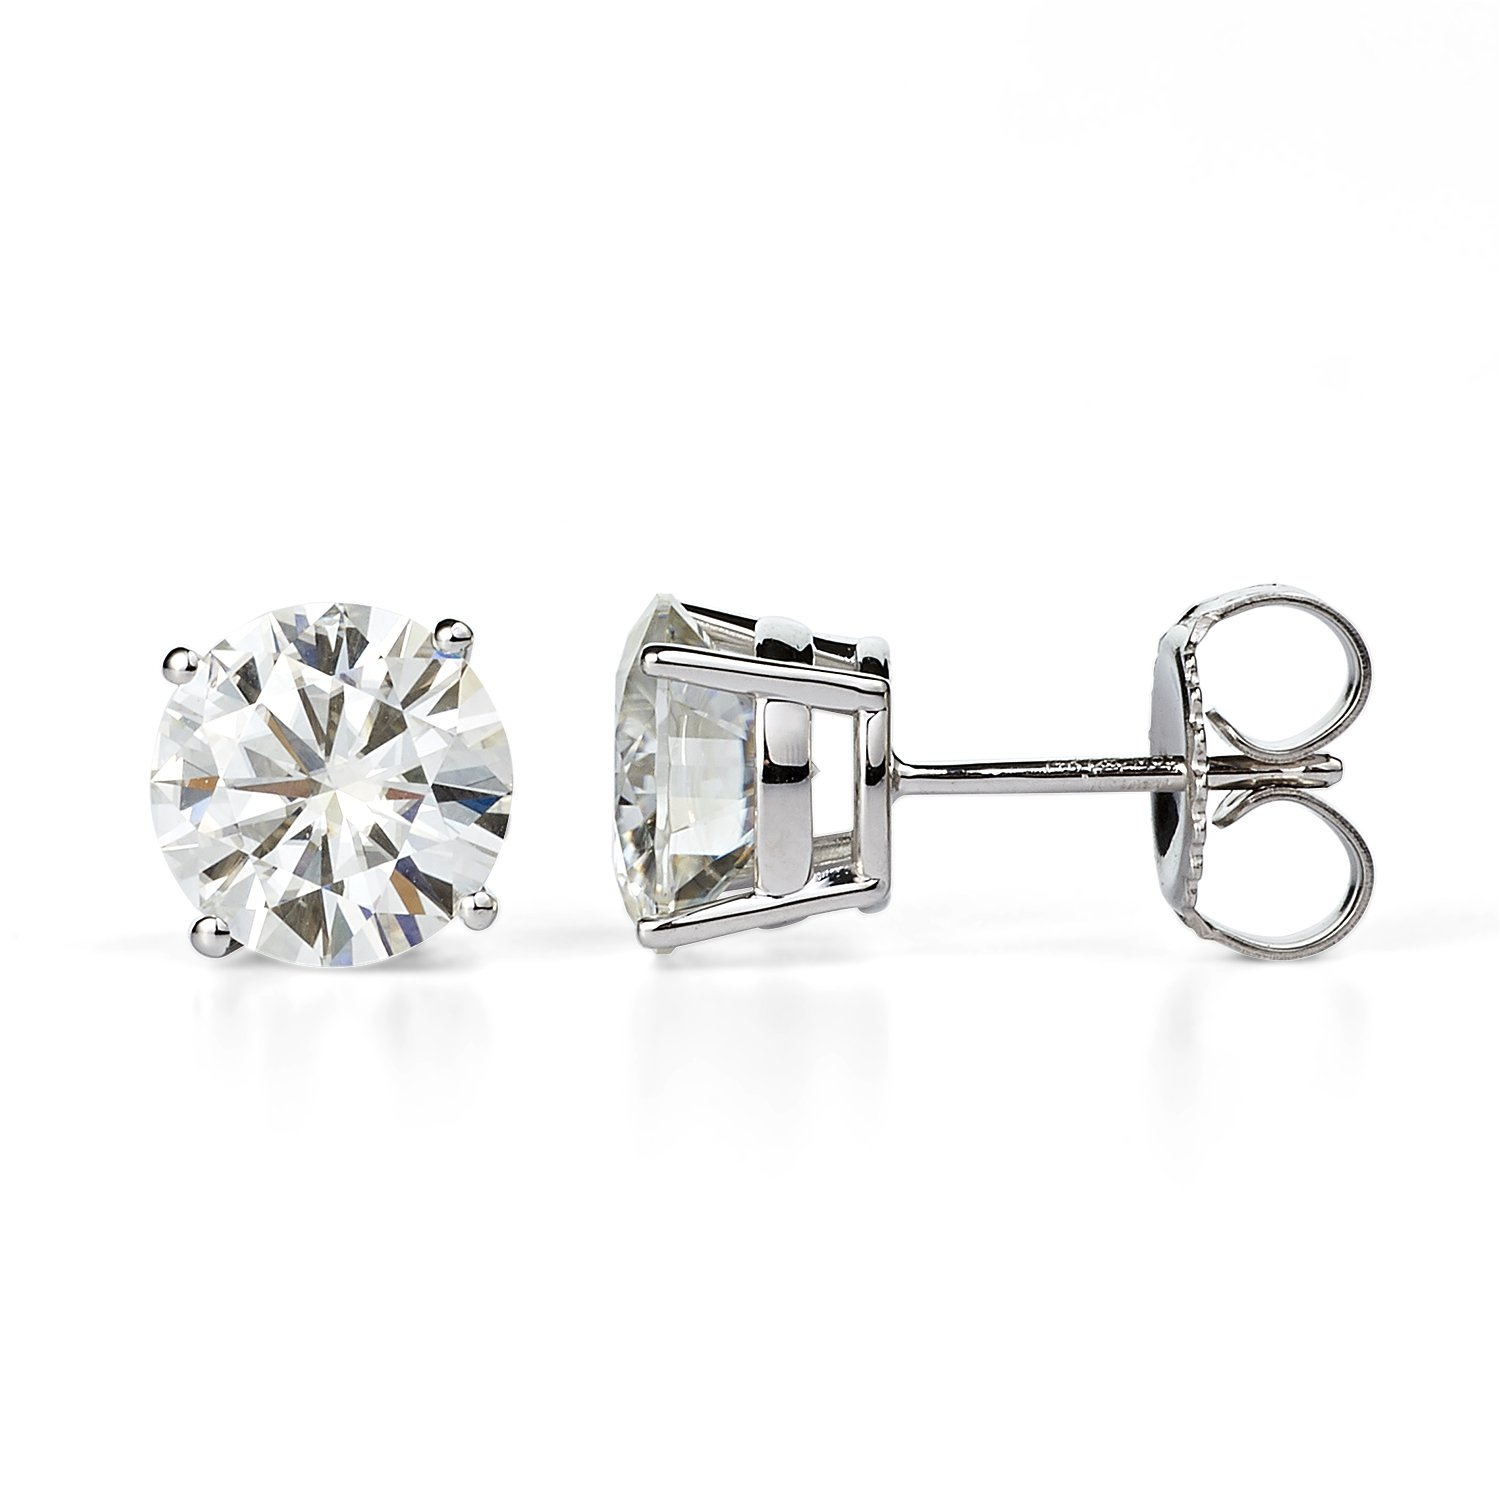 Forever Classic 7.5mm Round Moissanite Stud Earrings, 3cttw DEW By Charles & Colvard by Charles & Colvard